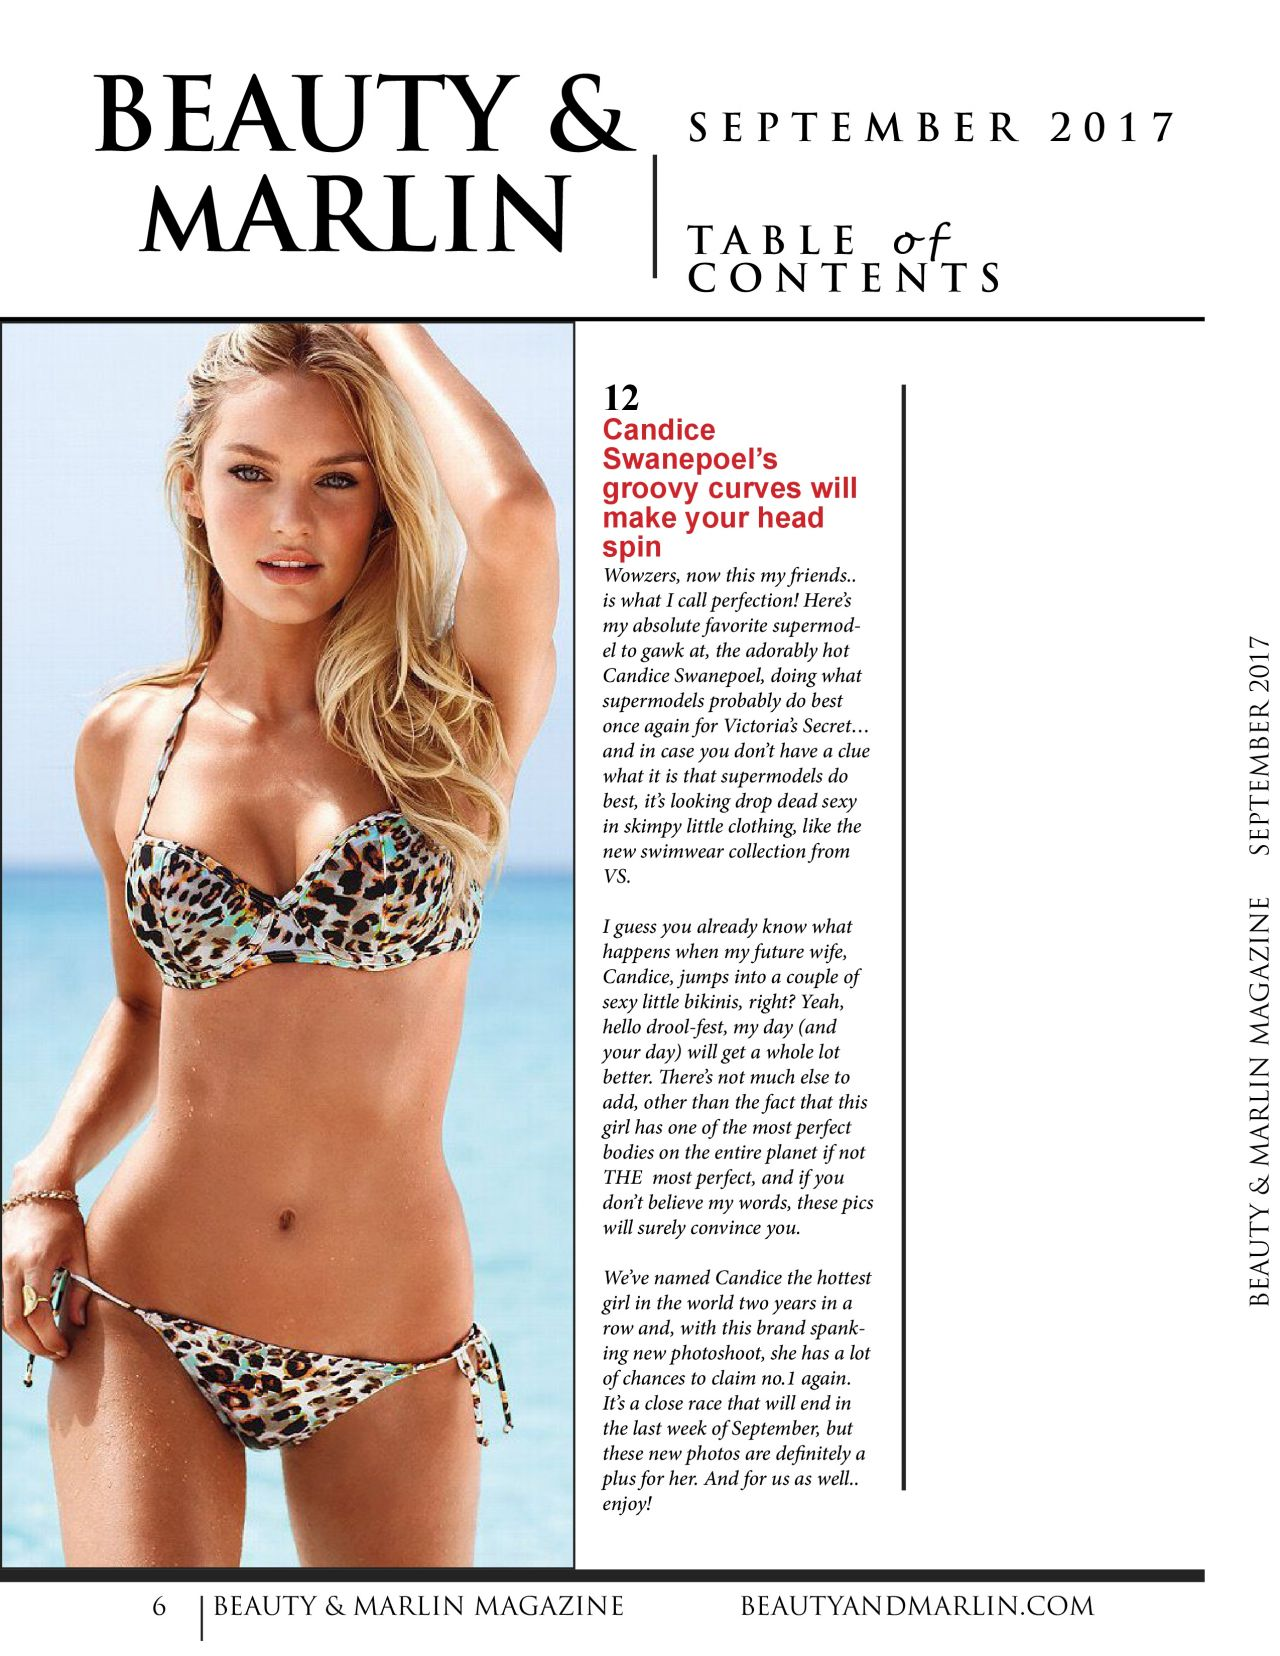 candice-swanepoel-beauty-marlin-magazine-september-2017-issue-19.jpg